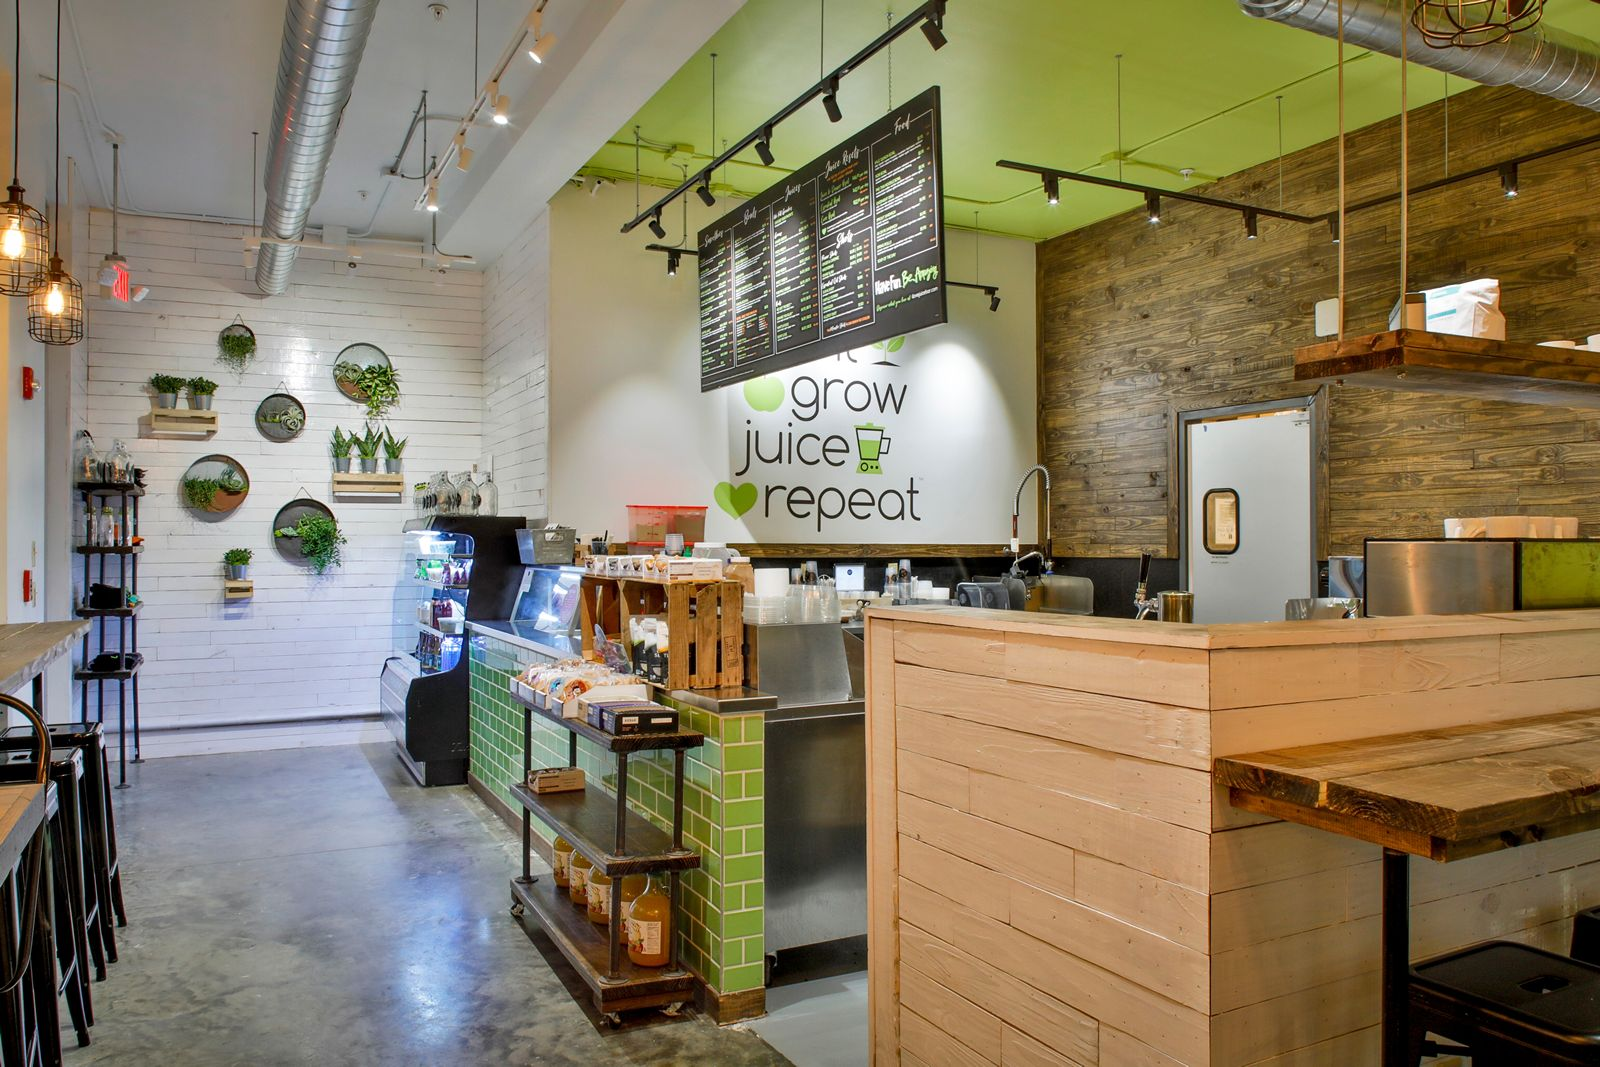 I Love Juice Bar Opens New Downtown Location - Clean eating made easier Voted Best Smoothie Bar in Memphis. Discounts for Locals Until 2019.